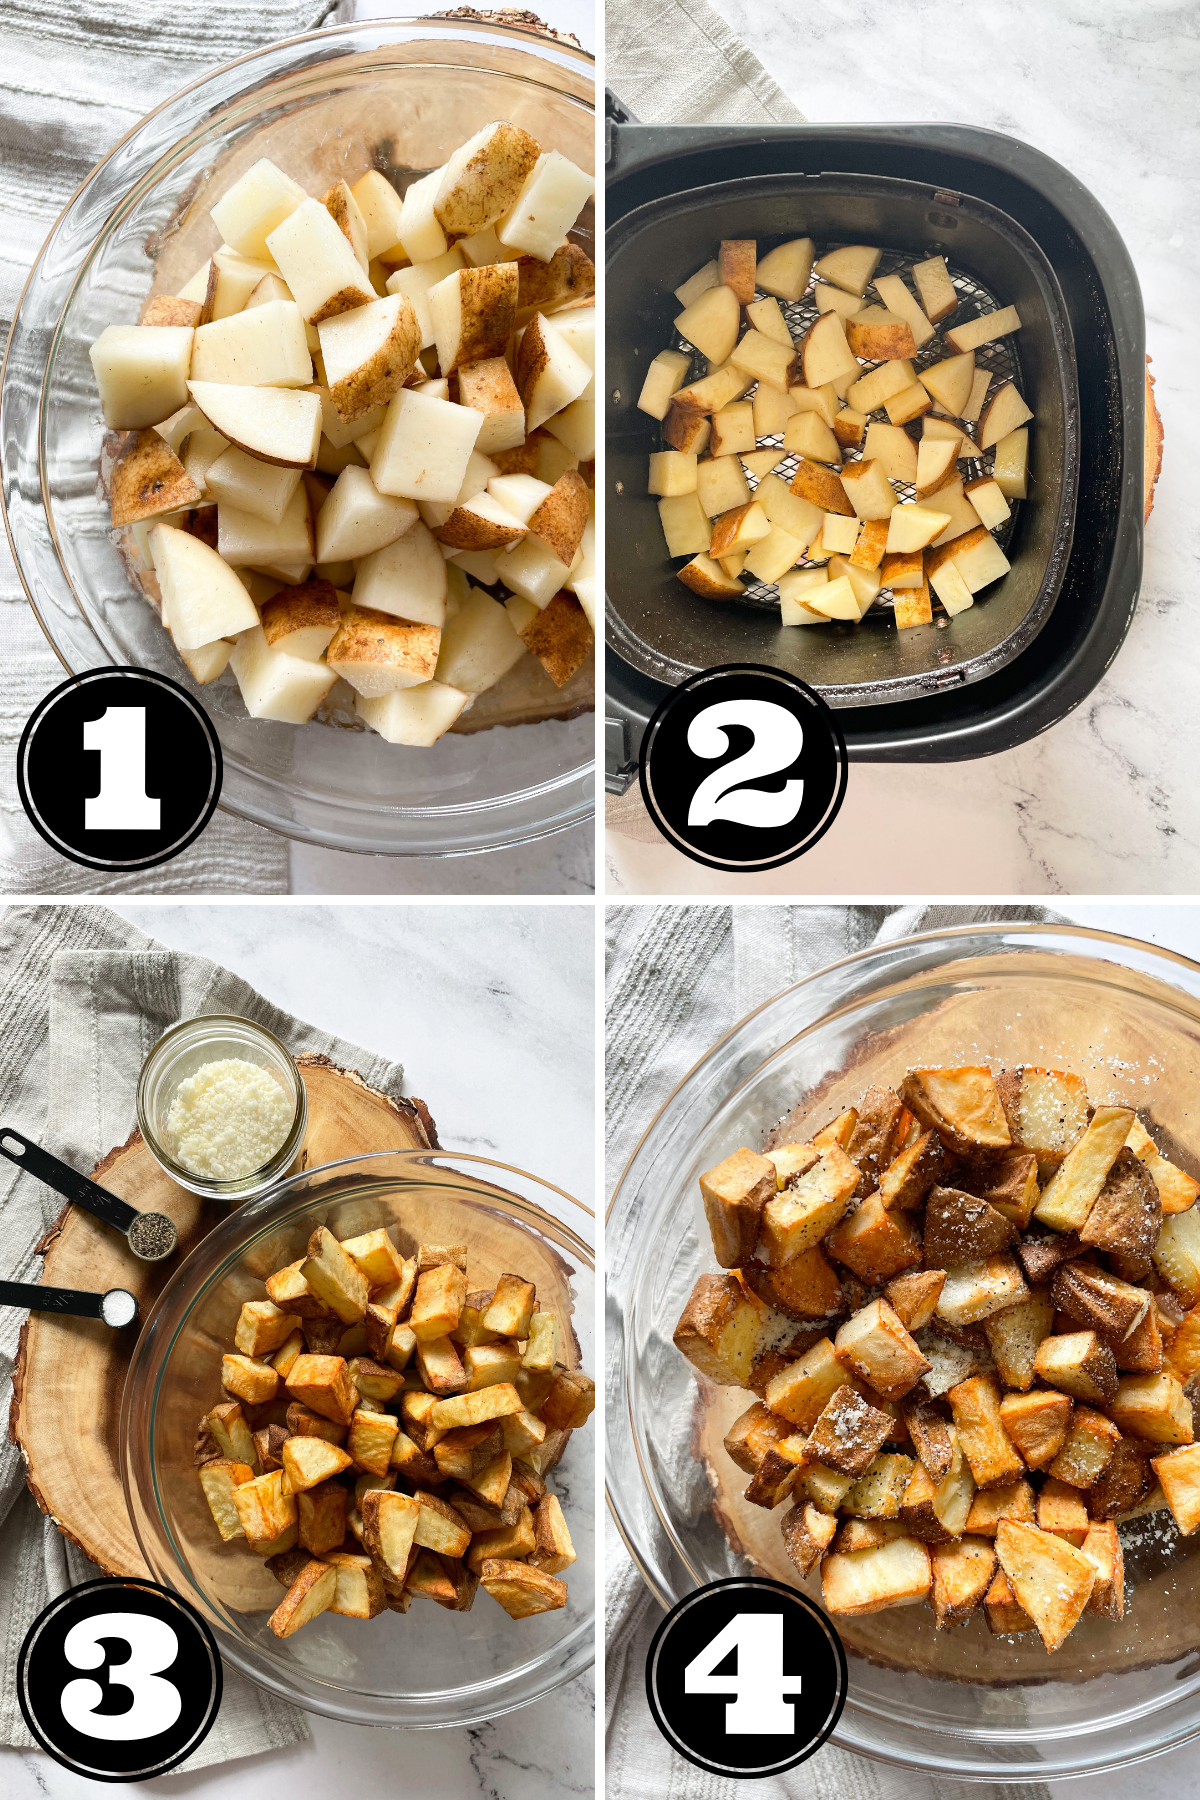 steps showing how to make air fryer potatoes